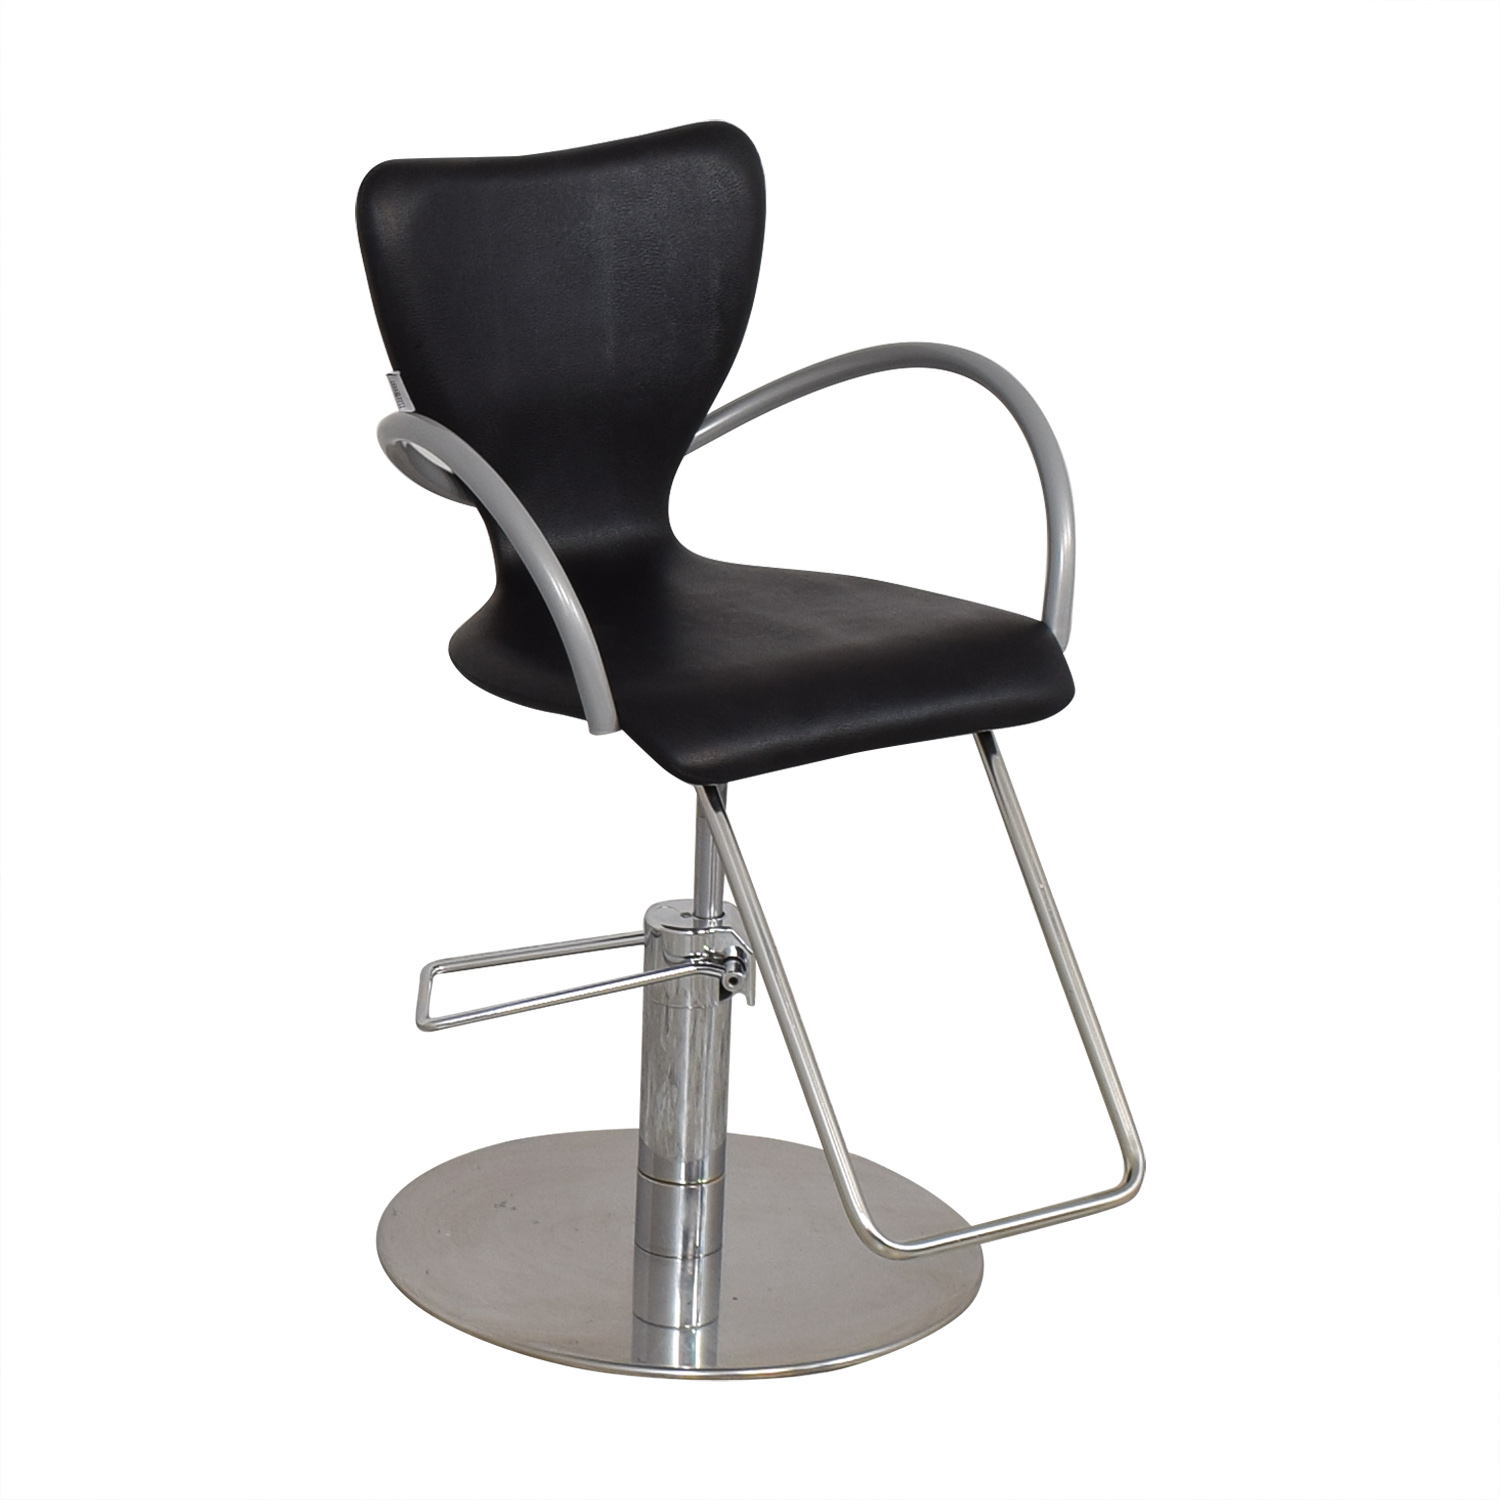 shop Gamma Bross Folda Parrot Styling Chair Gamma & Bross